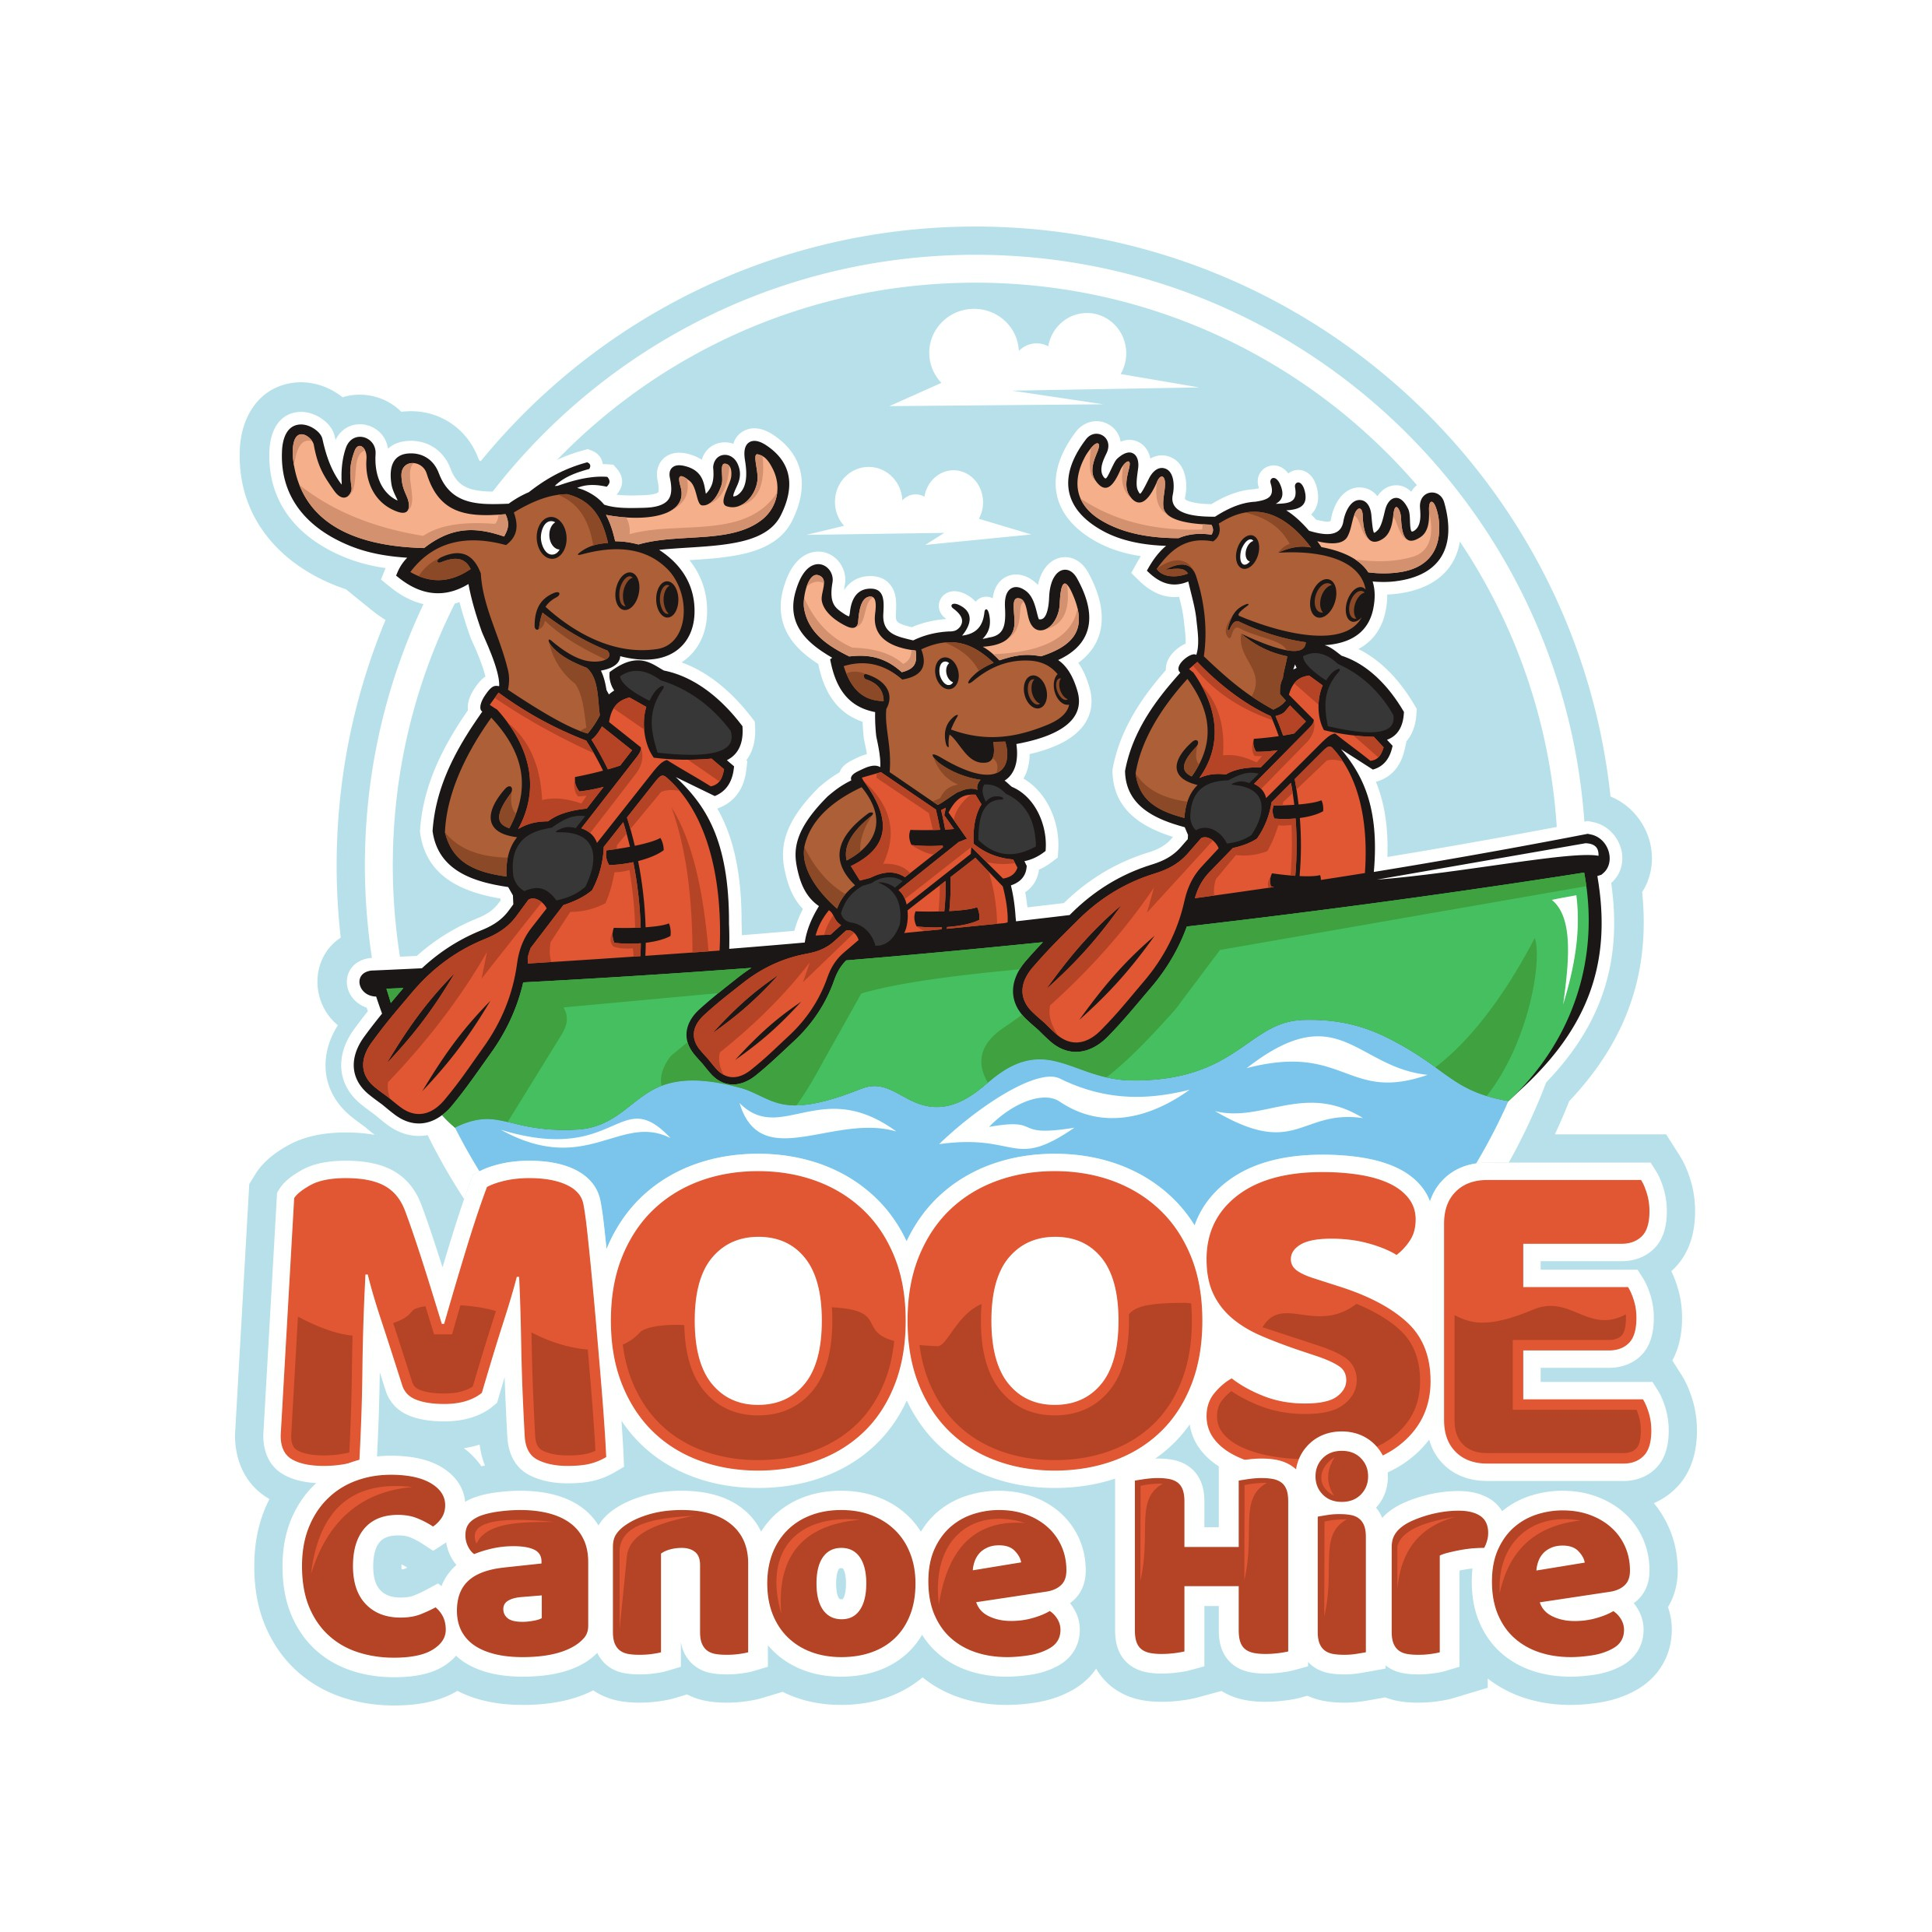 Design a fun and informative logo for Moose Canoe Hire!